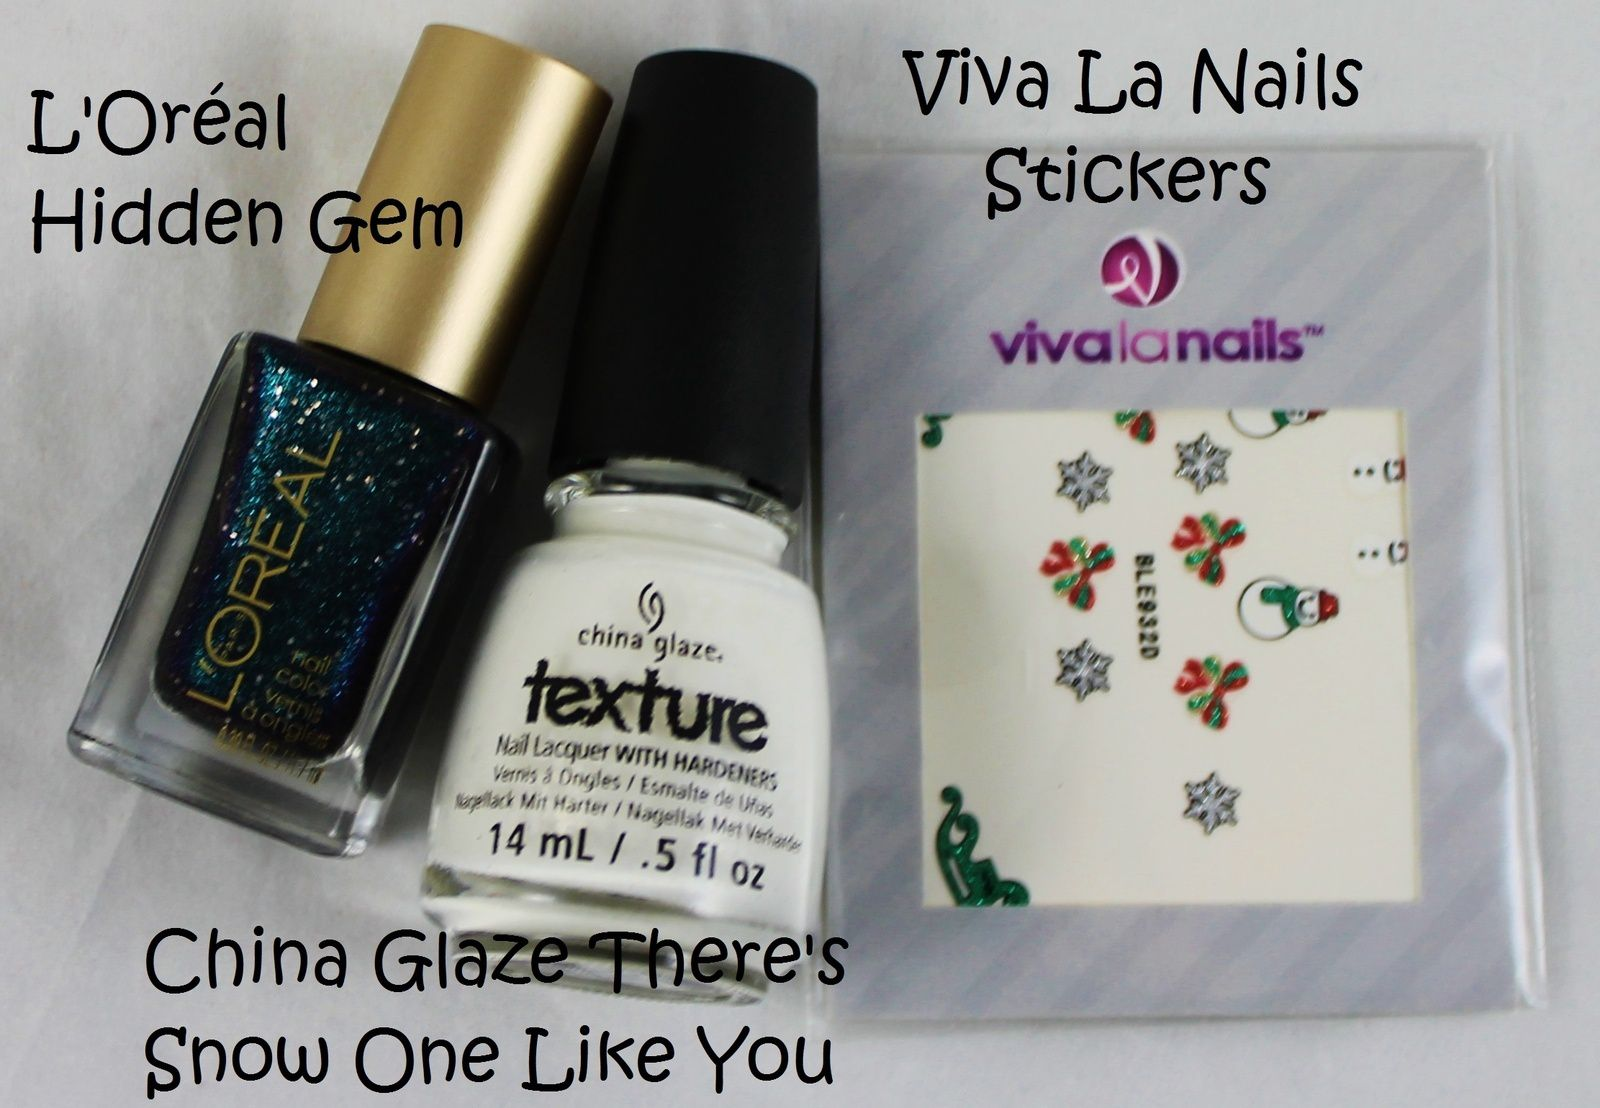 Peel-Off Base / Revlon Quick dry base coat / L'Oréal Hidden Gem / Viva La Nails Stickers / Poshe Top Coat / China Glaze There's Snow One Like You (French)